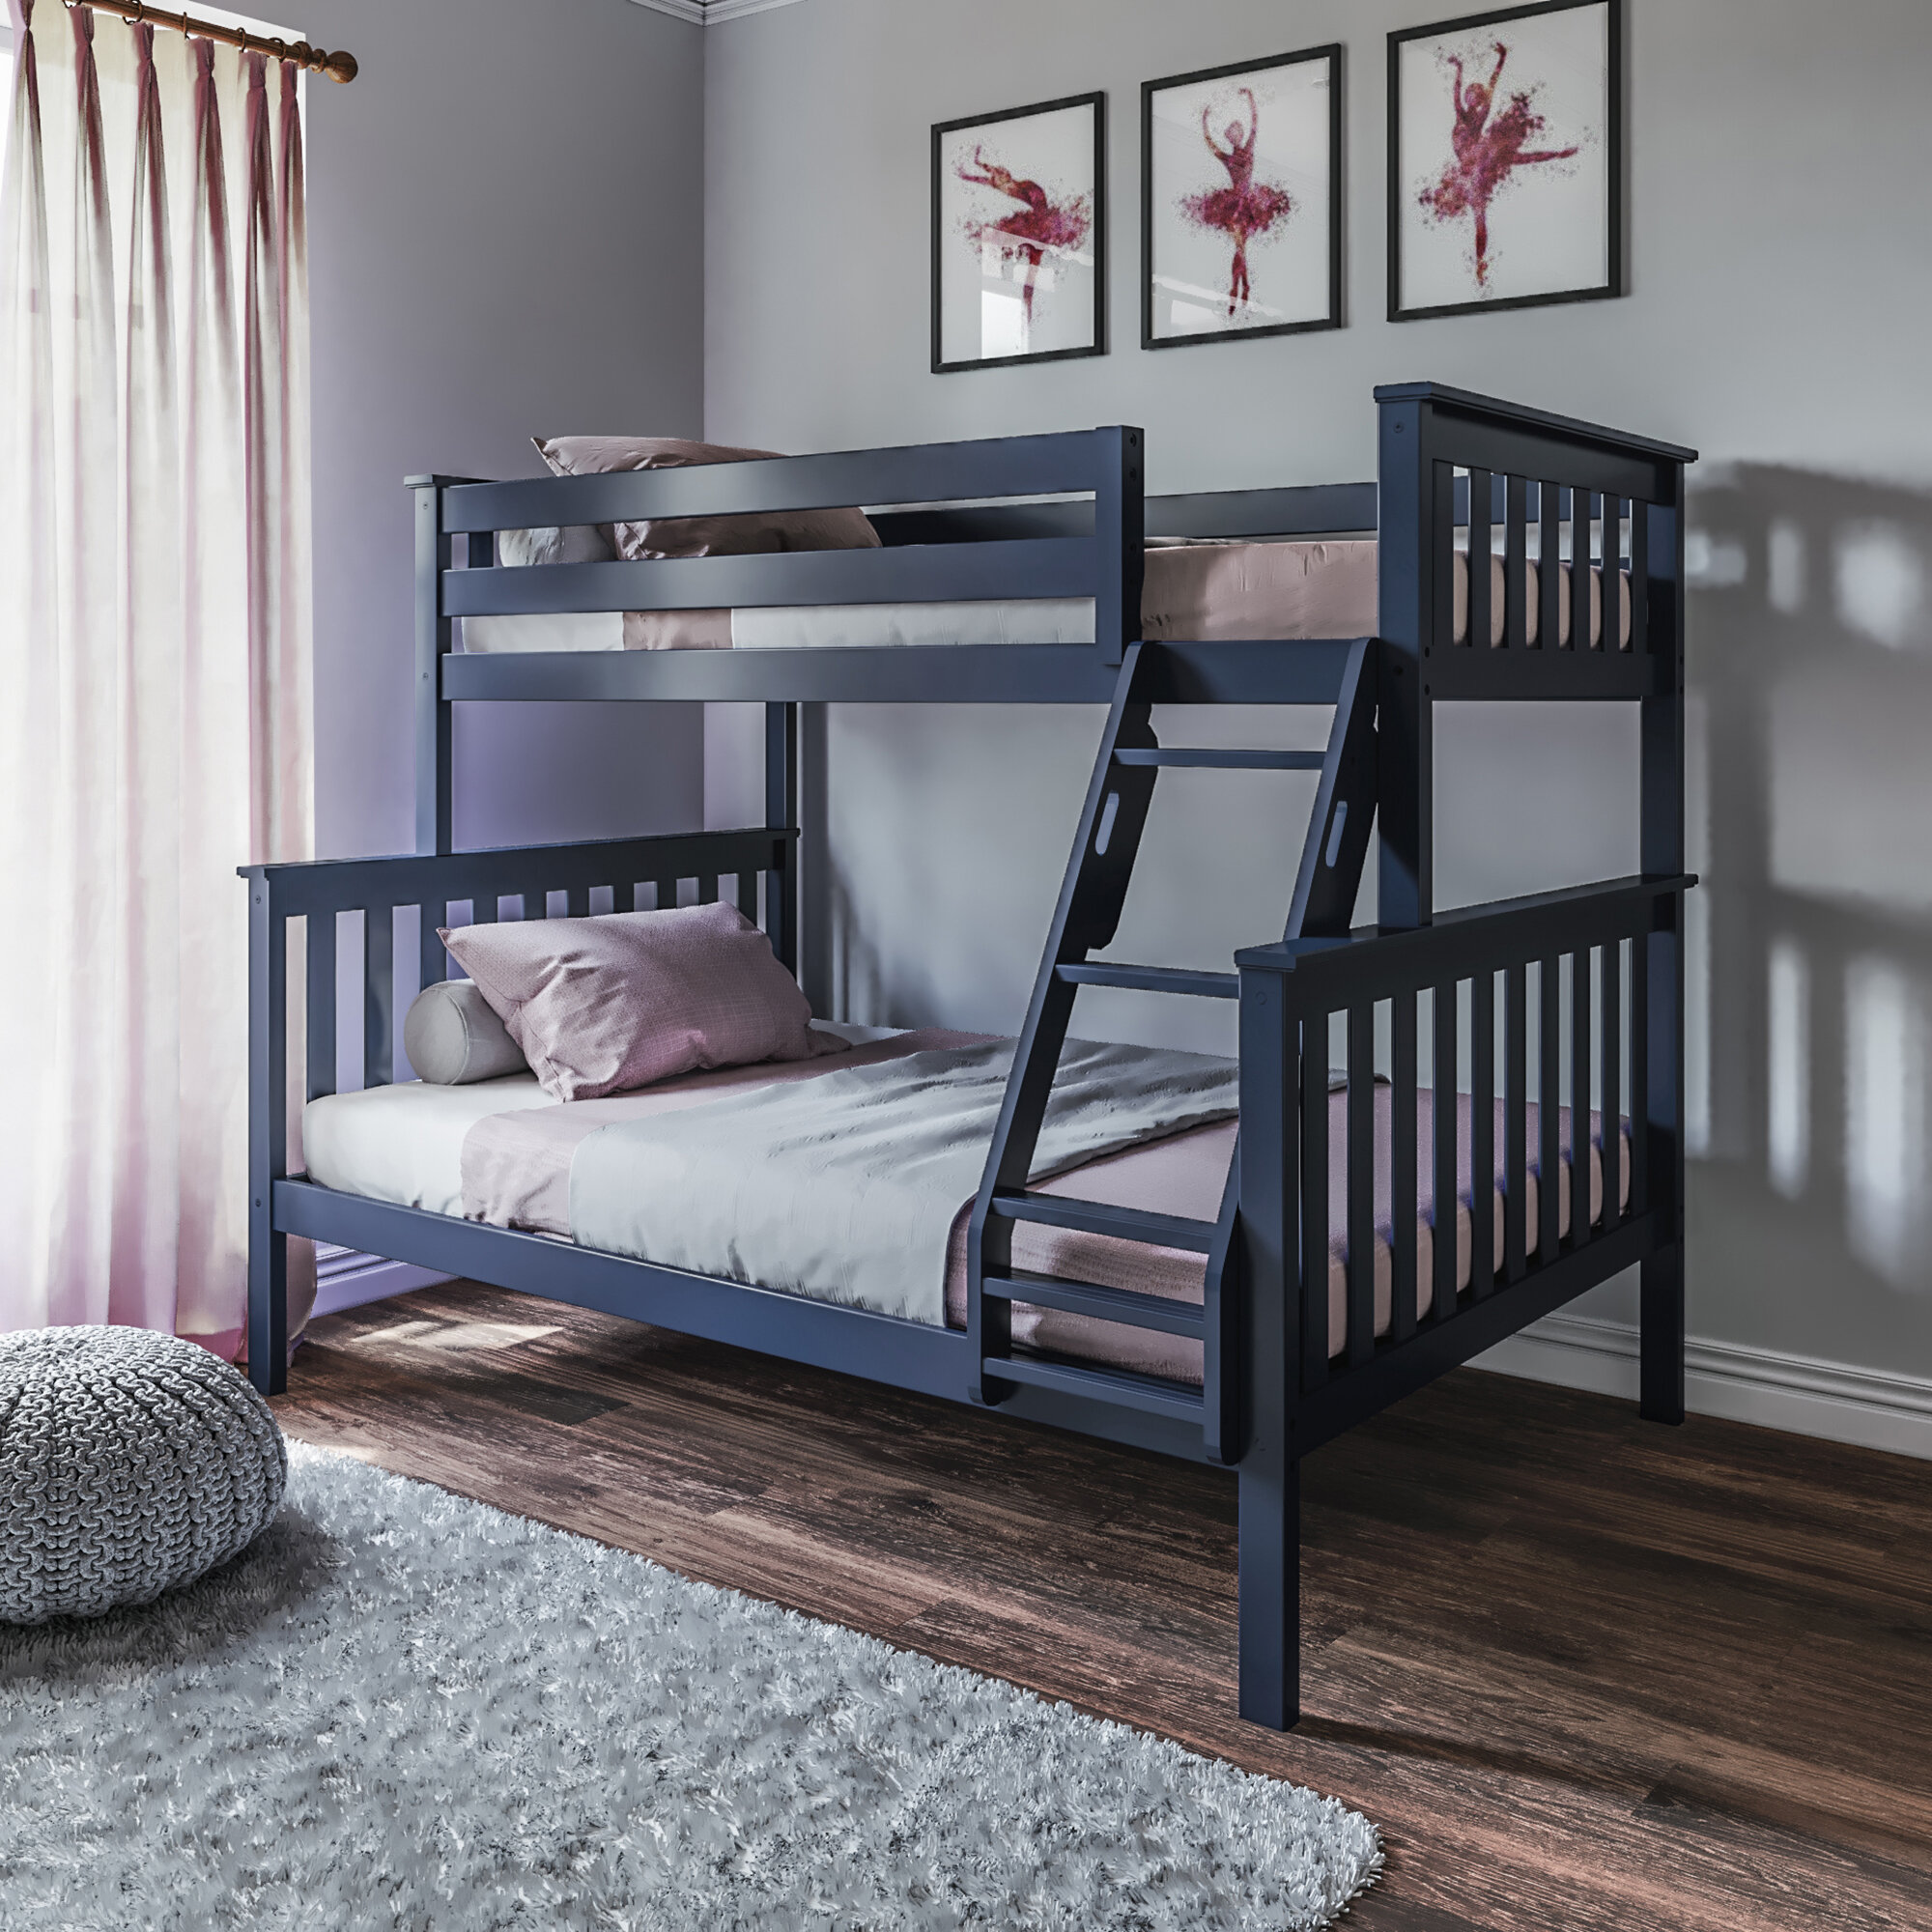 Wood Not Included Bunk Bed Diy Woodworking Plan To Build Your Own Full Over Full Size With Trundle And Hardware Kit For Bunk And Trundle Project Plans